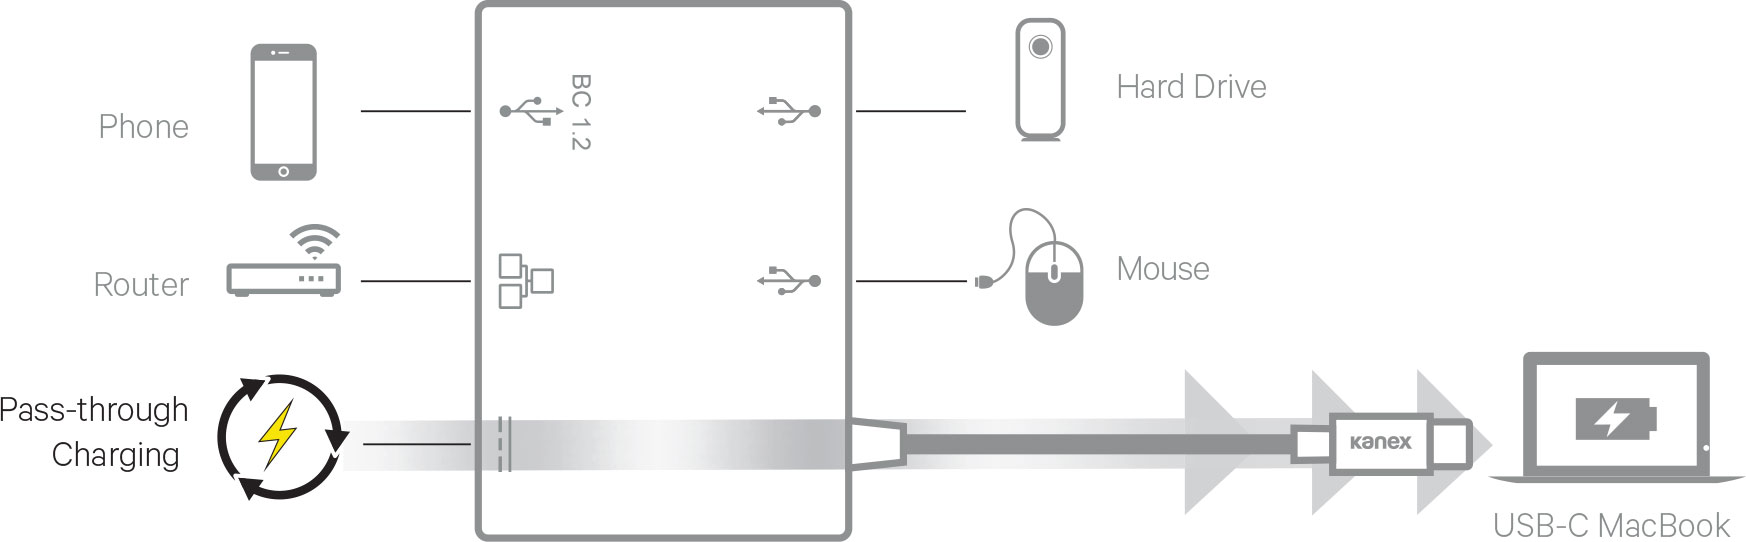 USB-C to Gigabit Ethernet Hub with Power Delivery